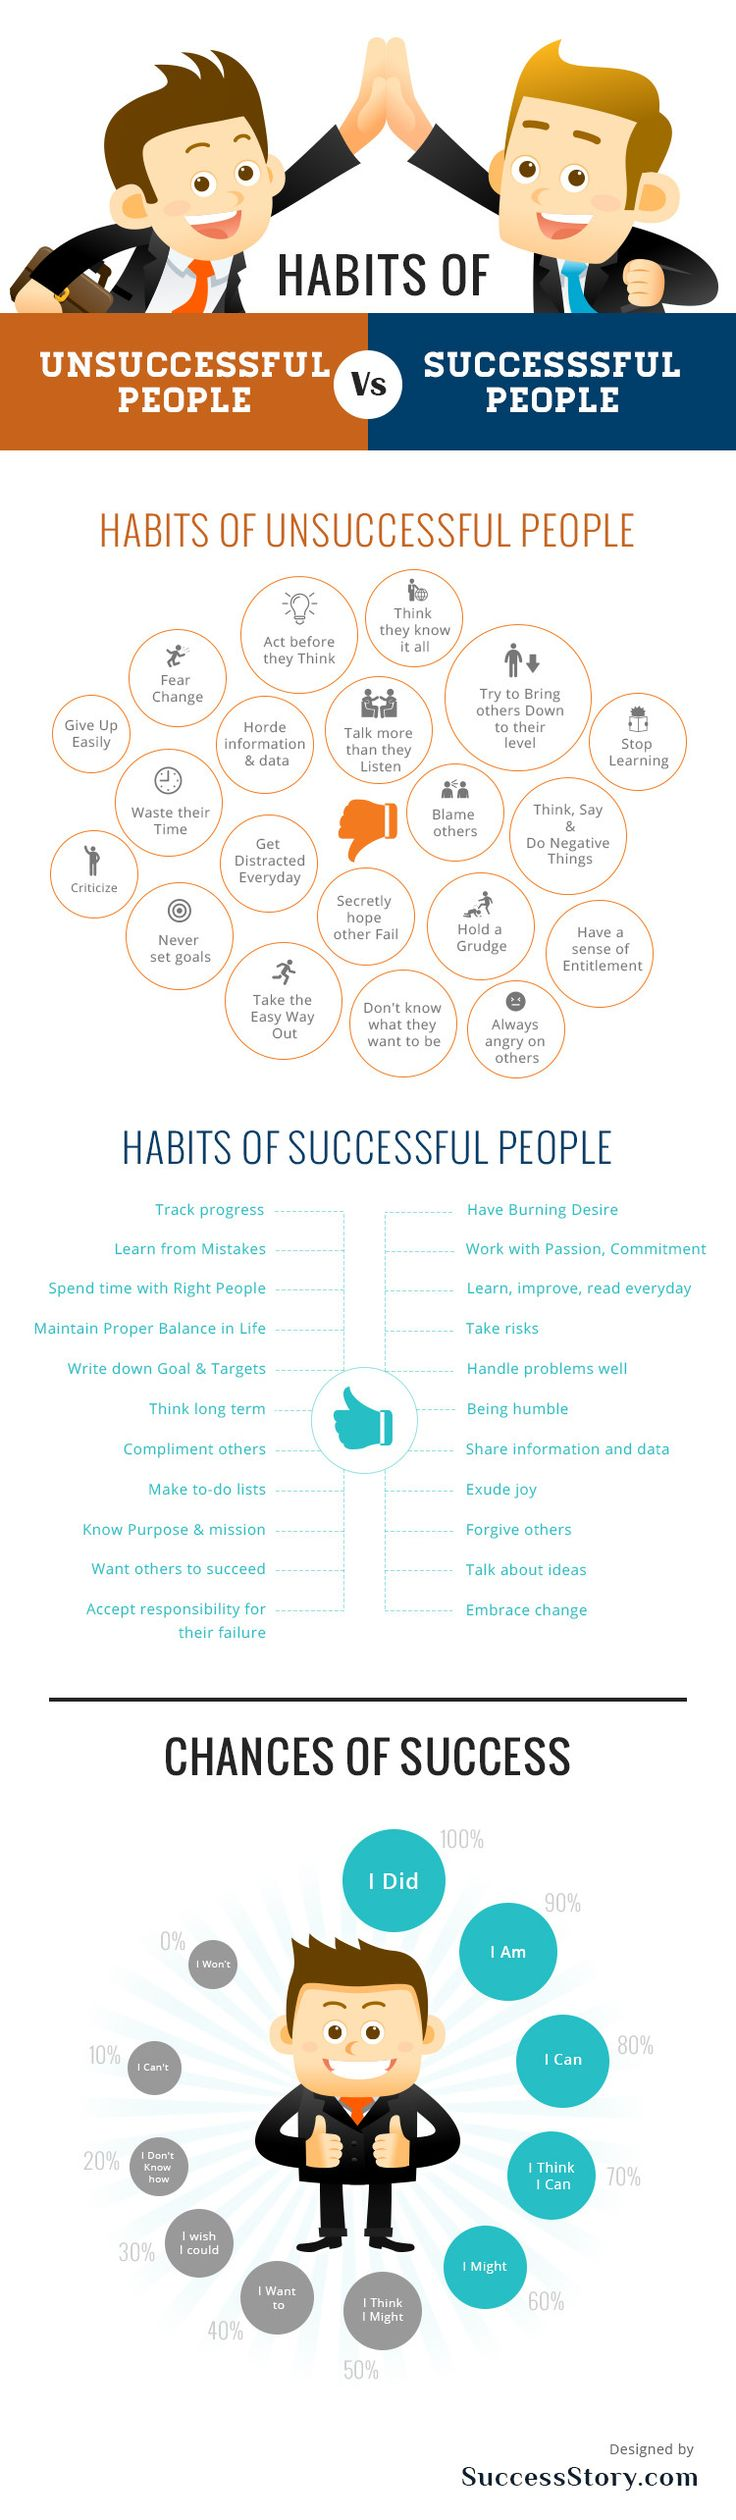 Know the habits of successful and unsuccessful people, which are applicable on the style of leadership.